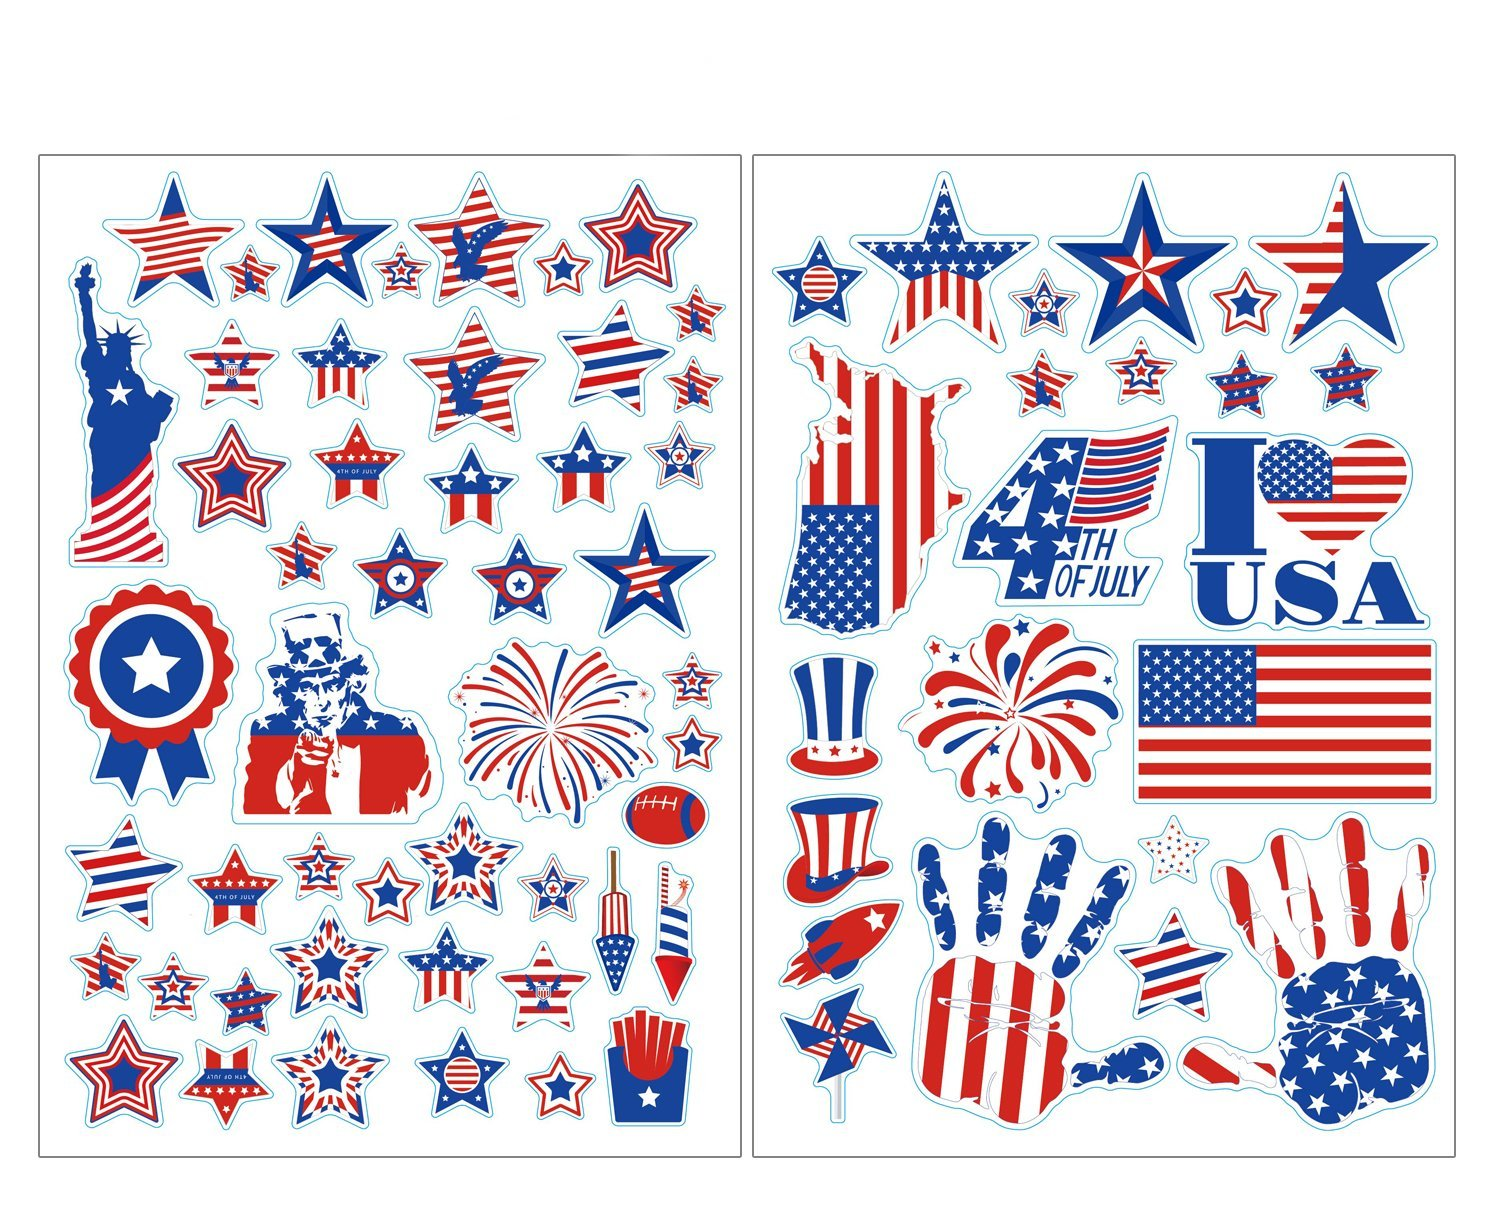 jollylife 4th/Fourth of July Window Clings Decorations - Patriotic Red White Blue Party Supplies Decor 140+